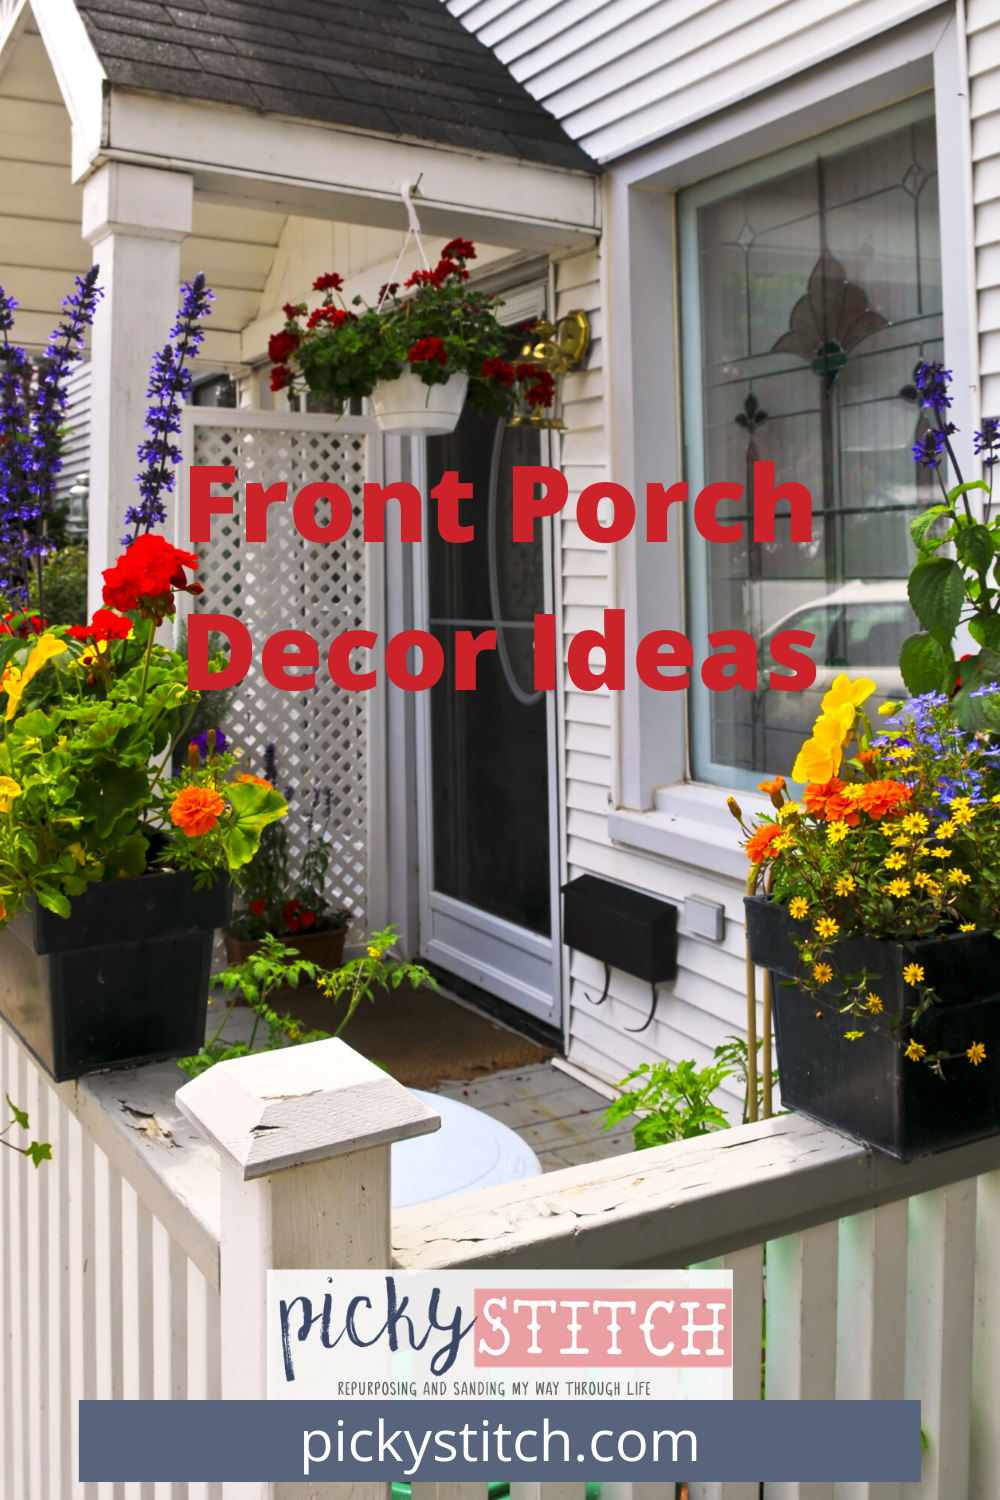 A front porch is cozy, but what truly makes it inviting is the front porch decor ideas. Bright colors, textiles like pillows, textures like plants and more call to those who could use a break and put their feet up.Learn how to make your porch inviting by reading on.#frontporchdecorideas #frontporchdecorideassummer #frontporchdecorcurbappeal